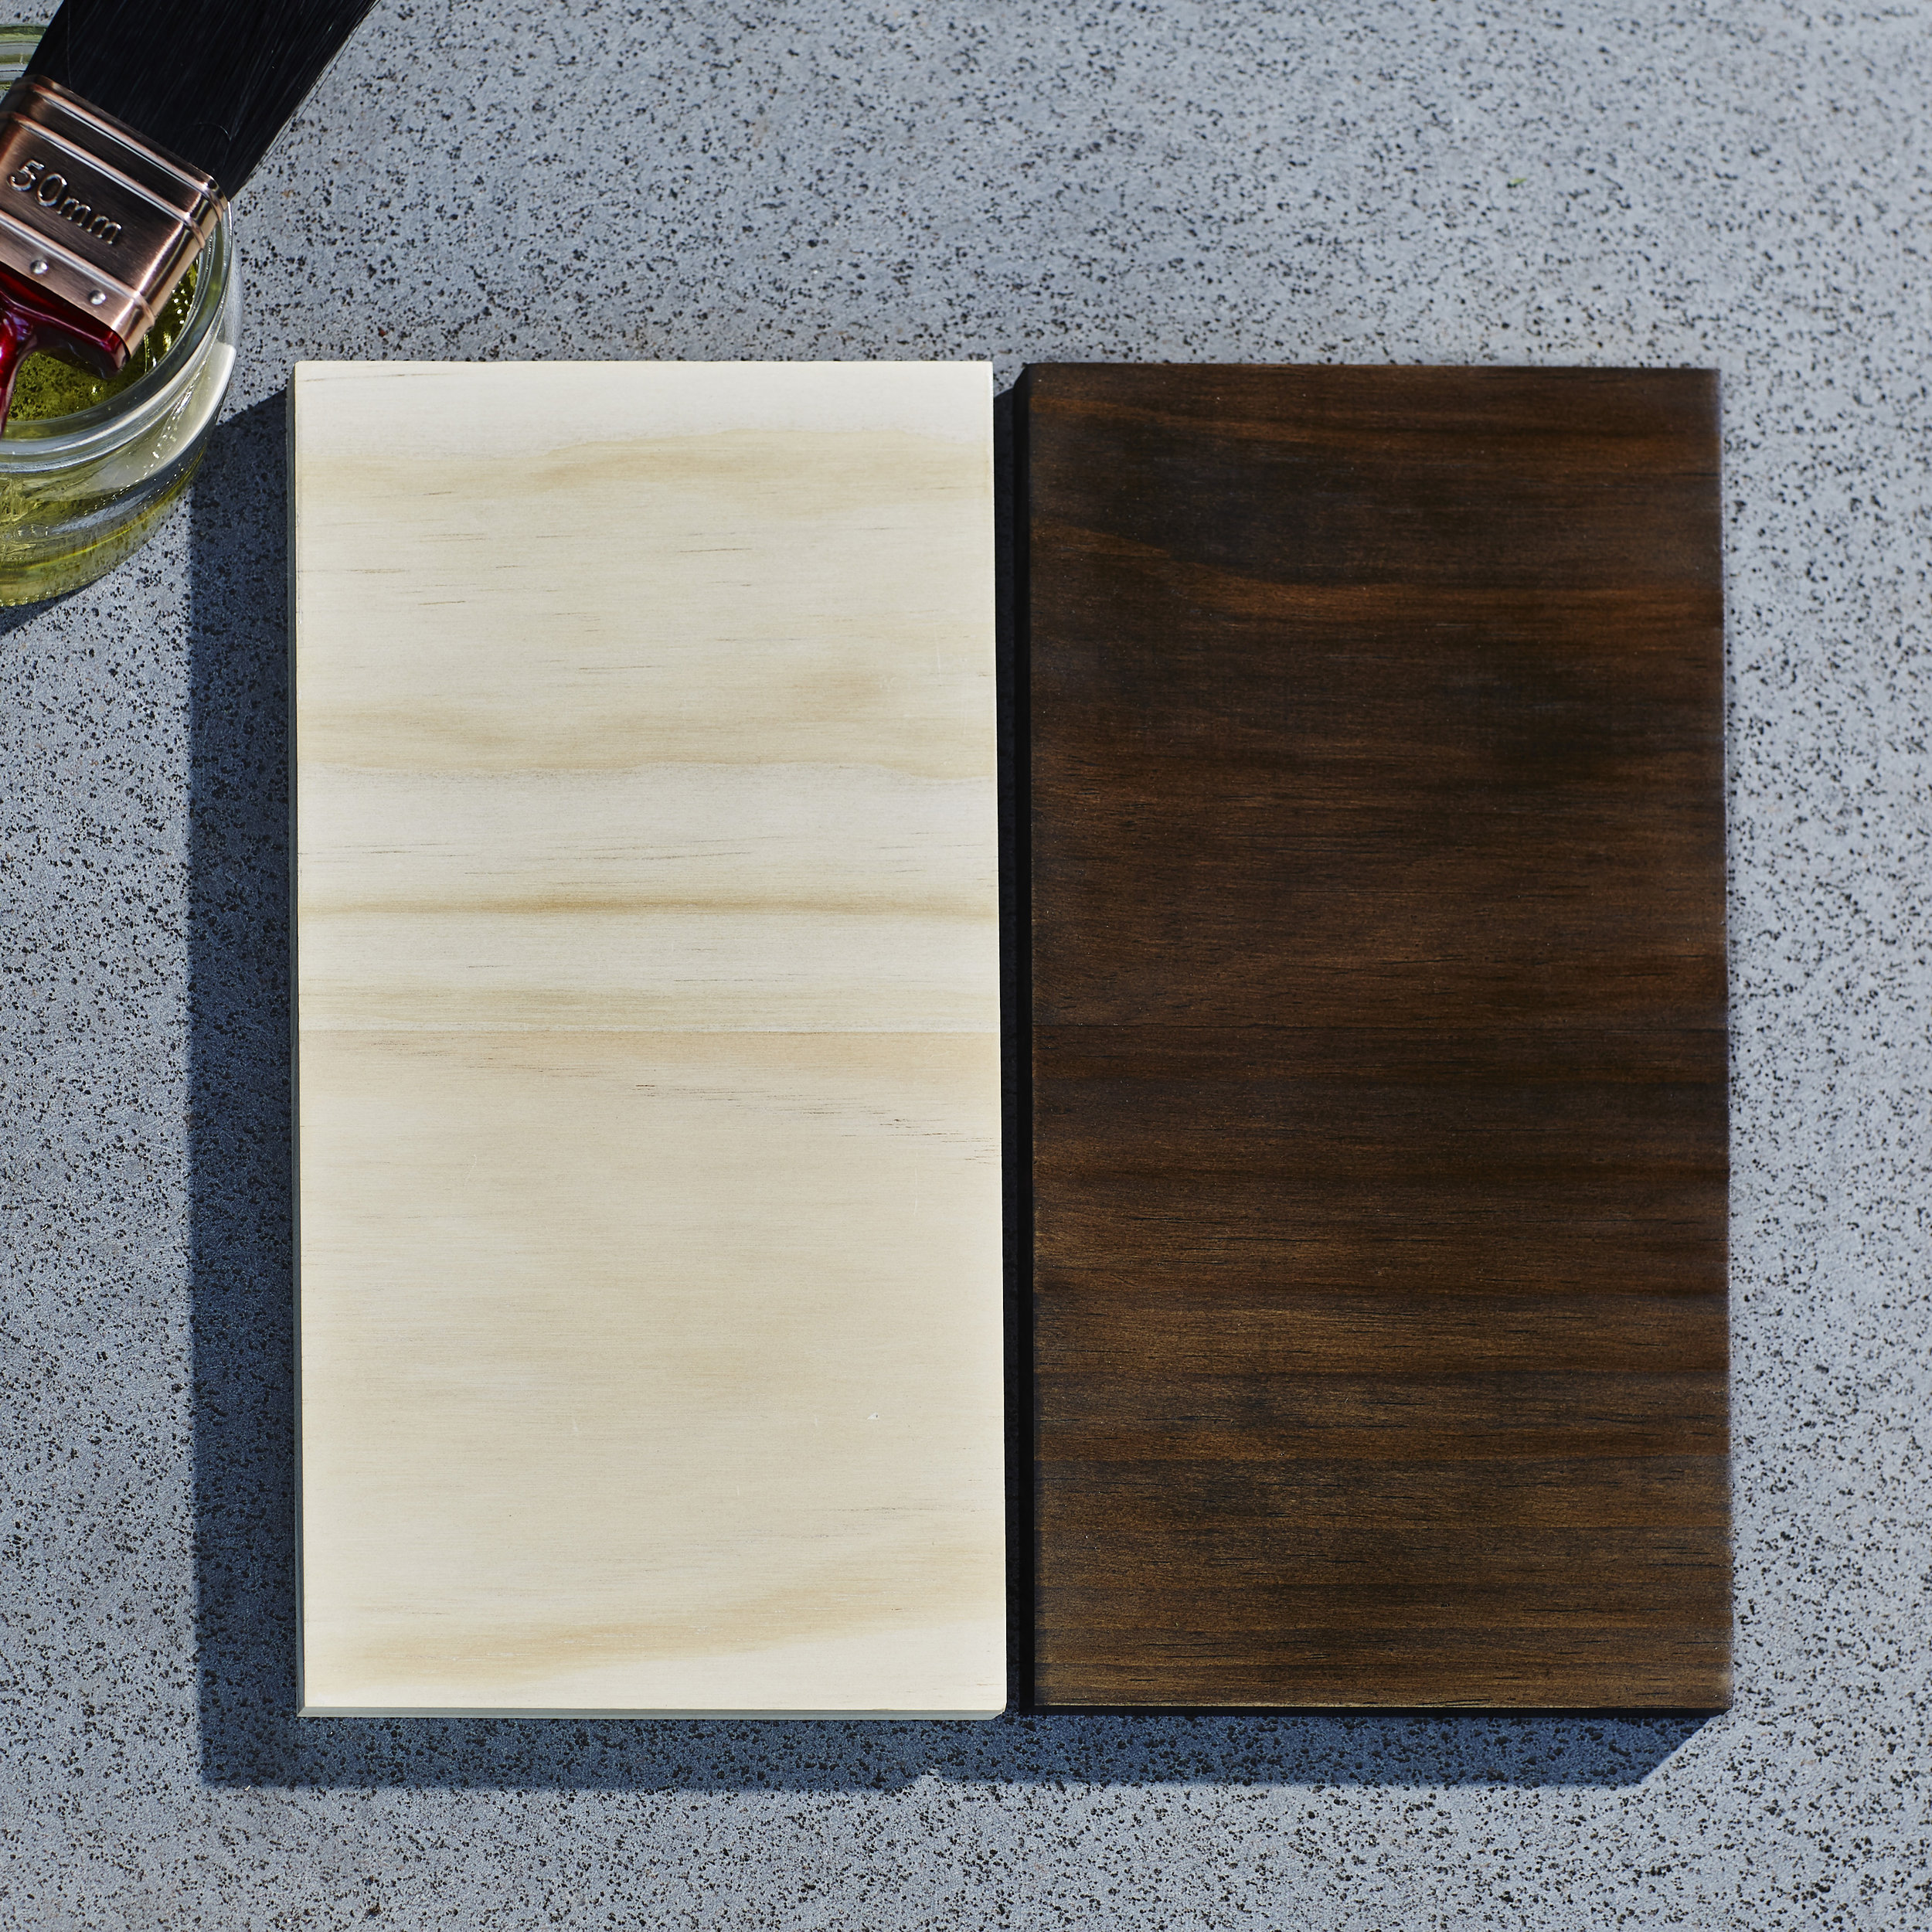 Clear or Dark stained finish options.